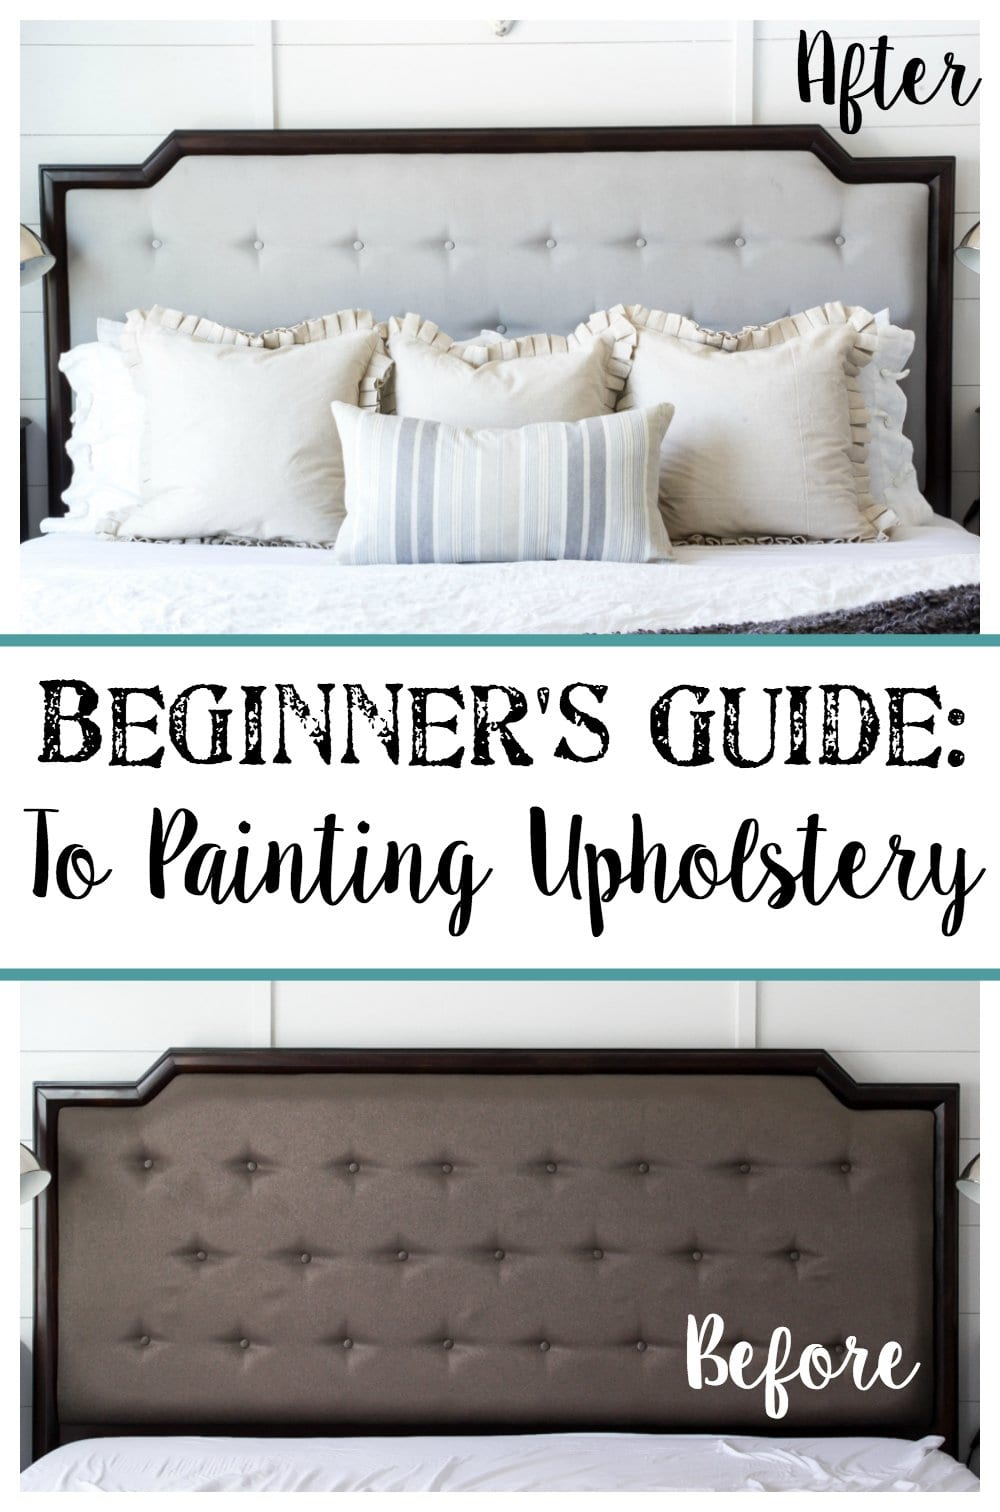 Beginner's Guide to Painting Upholstery | blesserhouse.com A simple tutorial for painting fabric furniture- This is so easy! Way better than upholstering furniture from scratch.